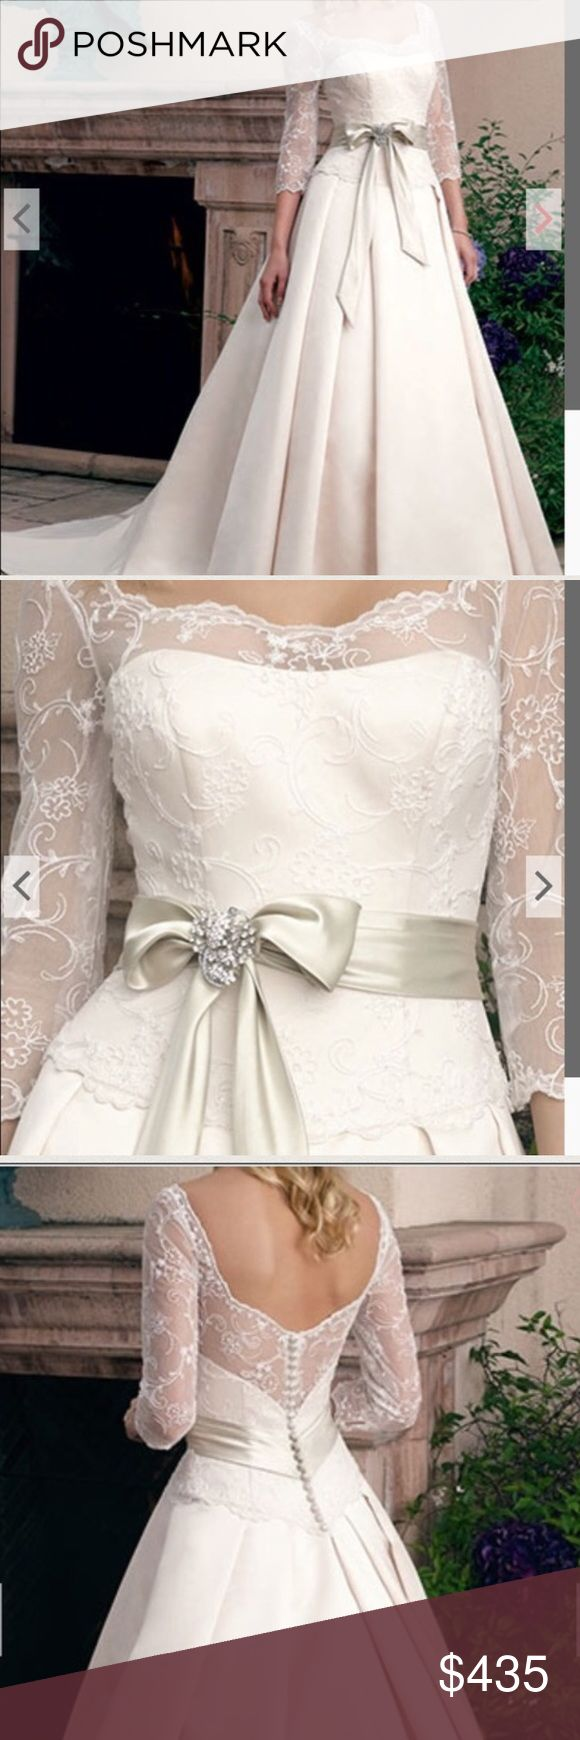 """Like new Casablanca bridal wedding ball gown dress Like new Casablanca Bridal 1800 wedding gown in ivory & champagne! Retail $1399. Purchased August 2016, worn indoors in September & dry cleaned. Street size 10, never altered, bustle sewn in. Brooch in stock photo NOT included. Beaded lace, sweetheart bodice, 3/4 length sleeves. Box pleats in skirt, chapel train,  satin tie and bow at waist. Measurements: shoulders 16"""" bust 37"""" waist 31"""" length down front is 63"""" from top of shoulder to…"""